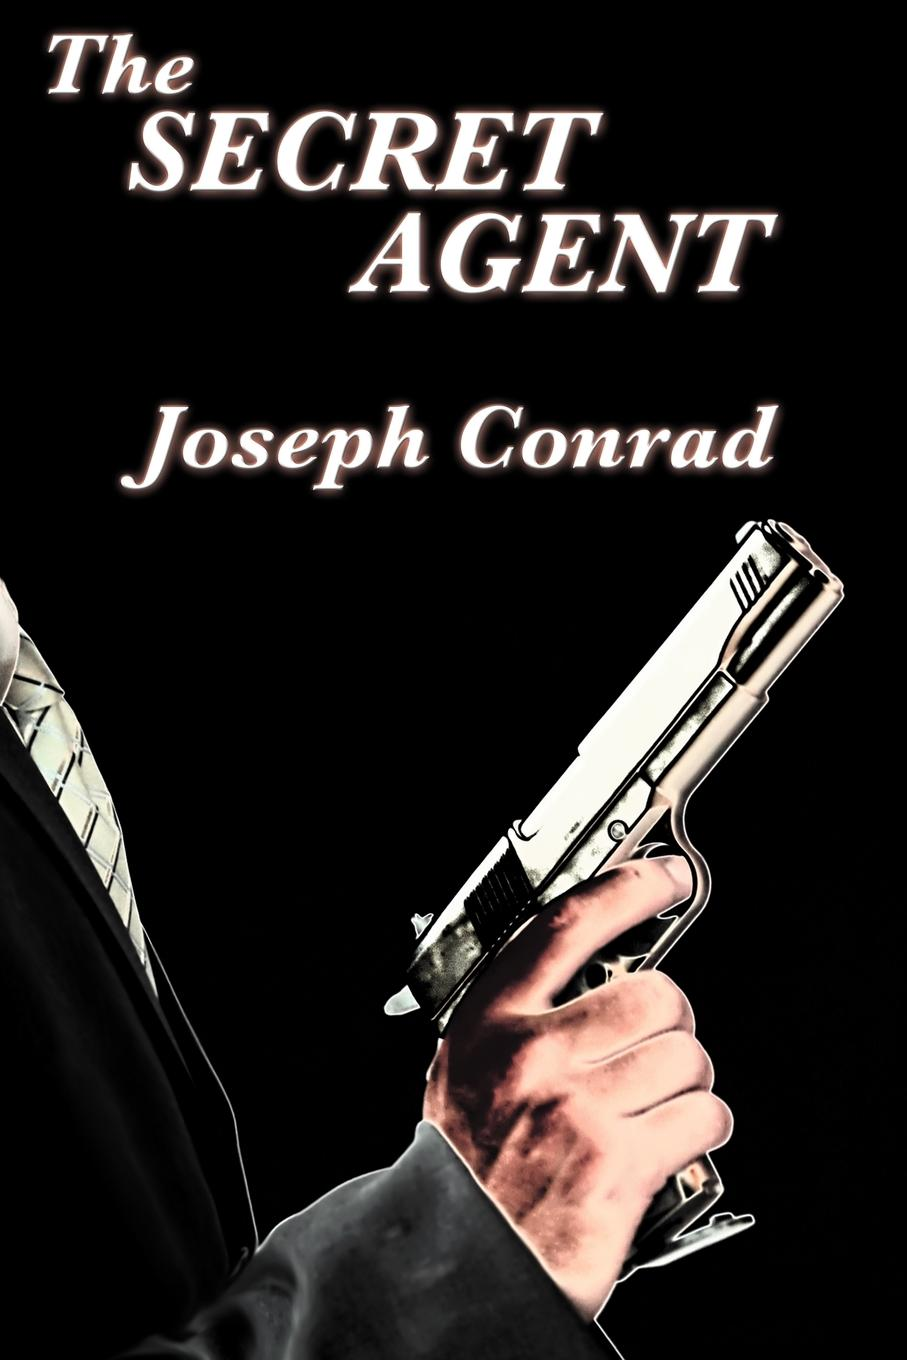 Cover Image: The Secret Agent